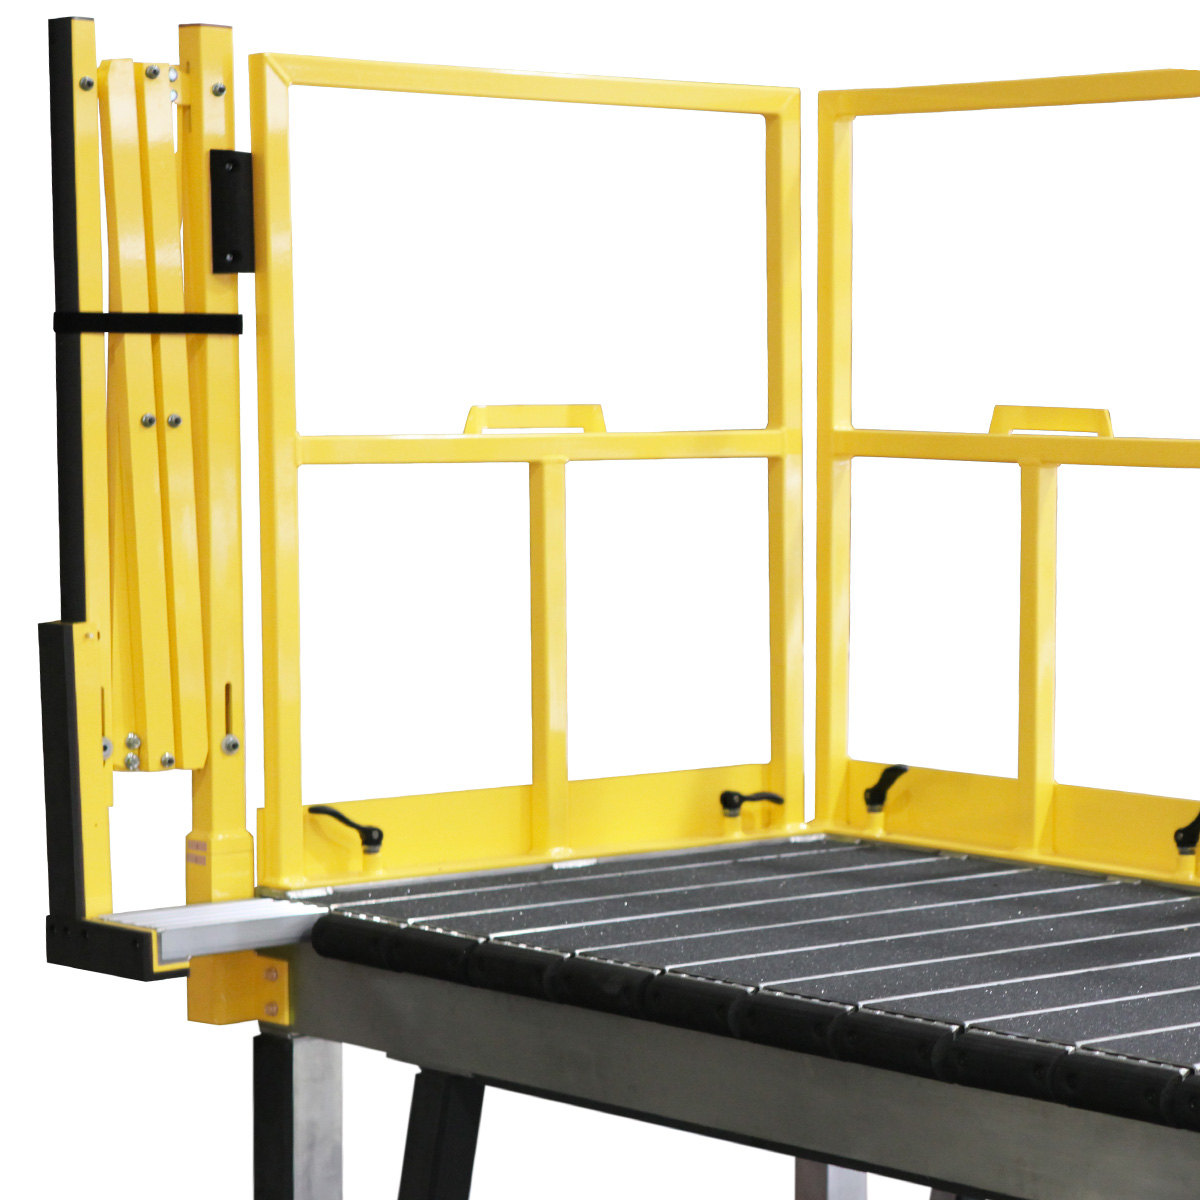 AgustaWestland AW139 – Daily Maintenance OSHA compliant, portable aluminum work platform with adjustable guardrails and accordion extension guardrails that automatically extend with cantilever deck extensions for 100% fall prevention.